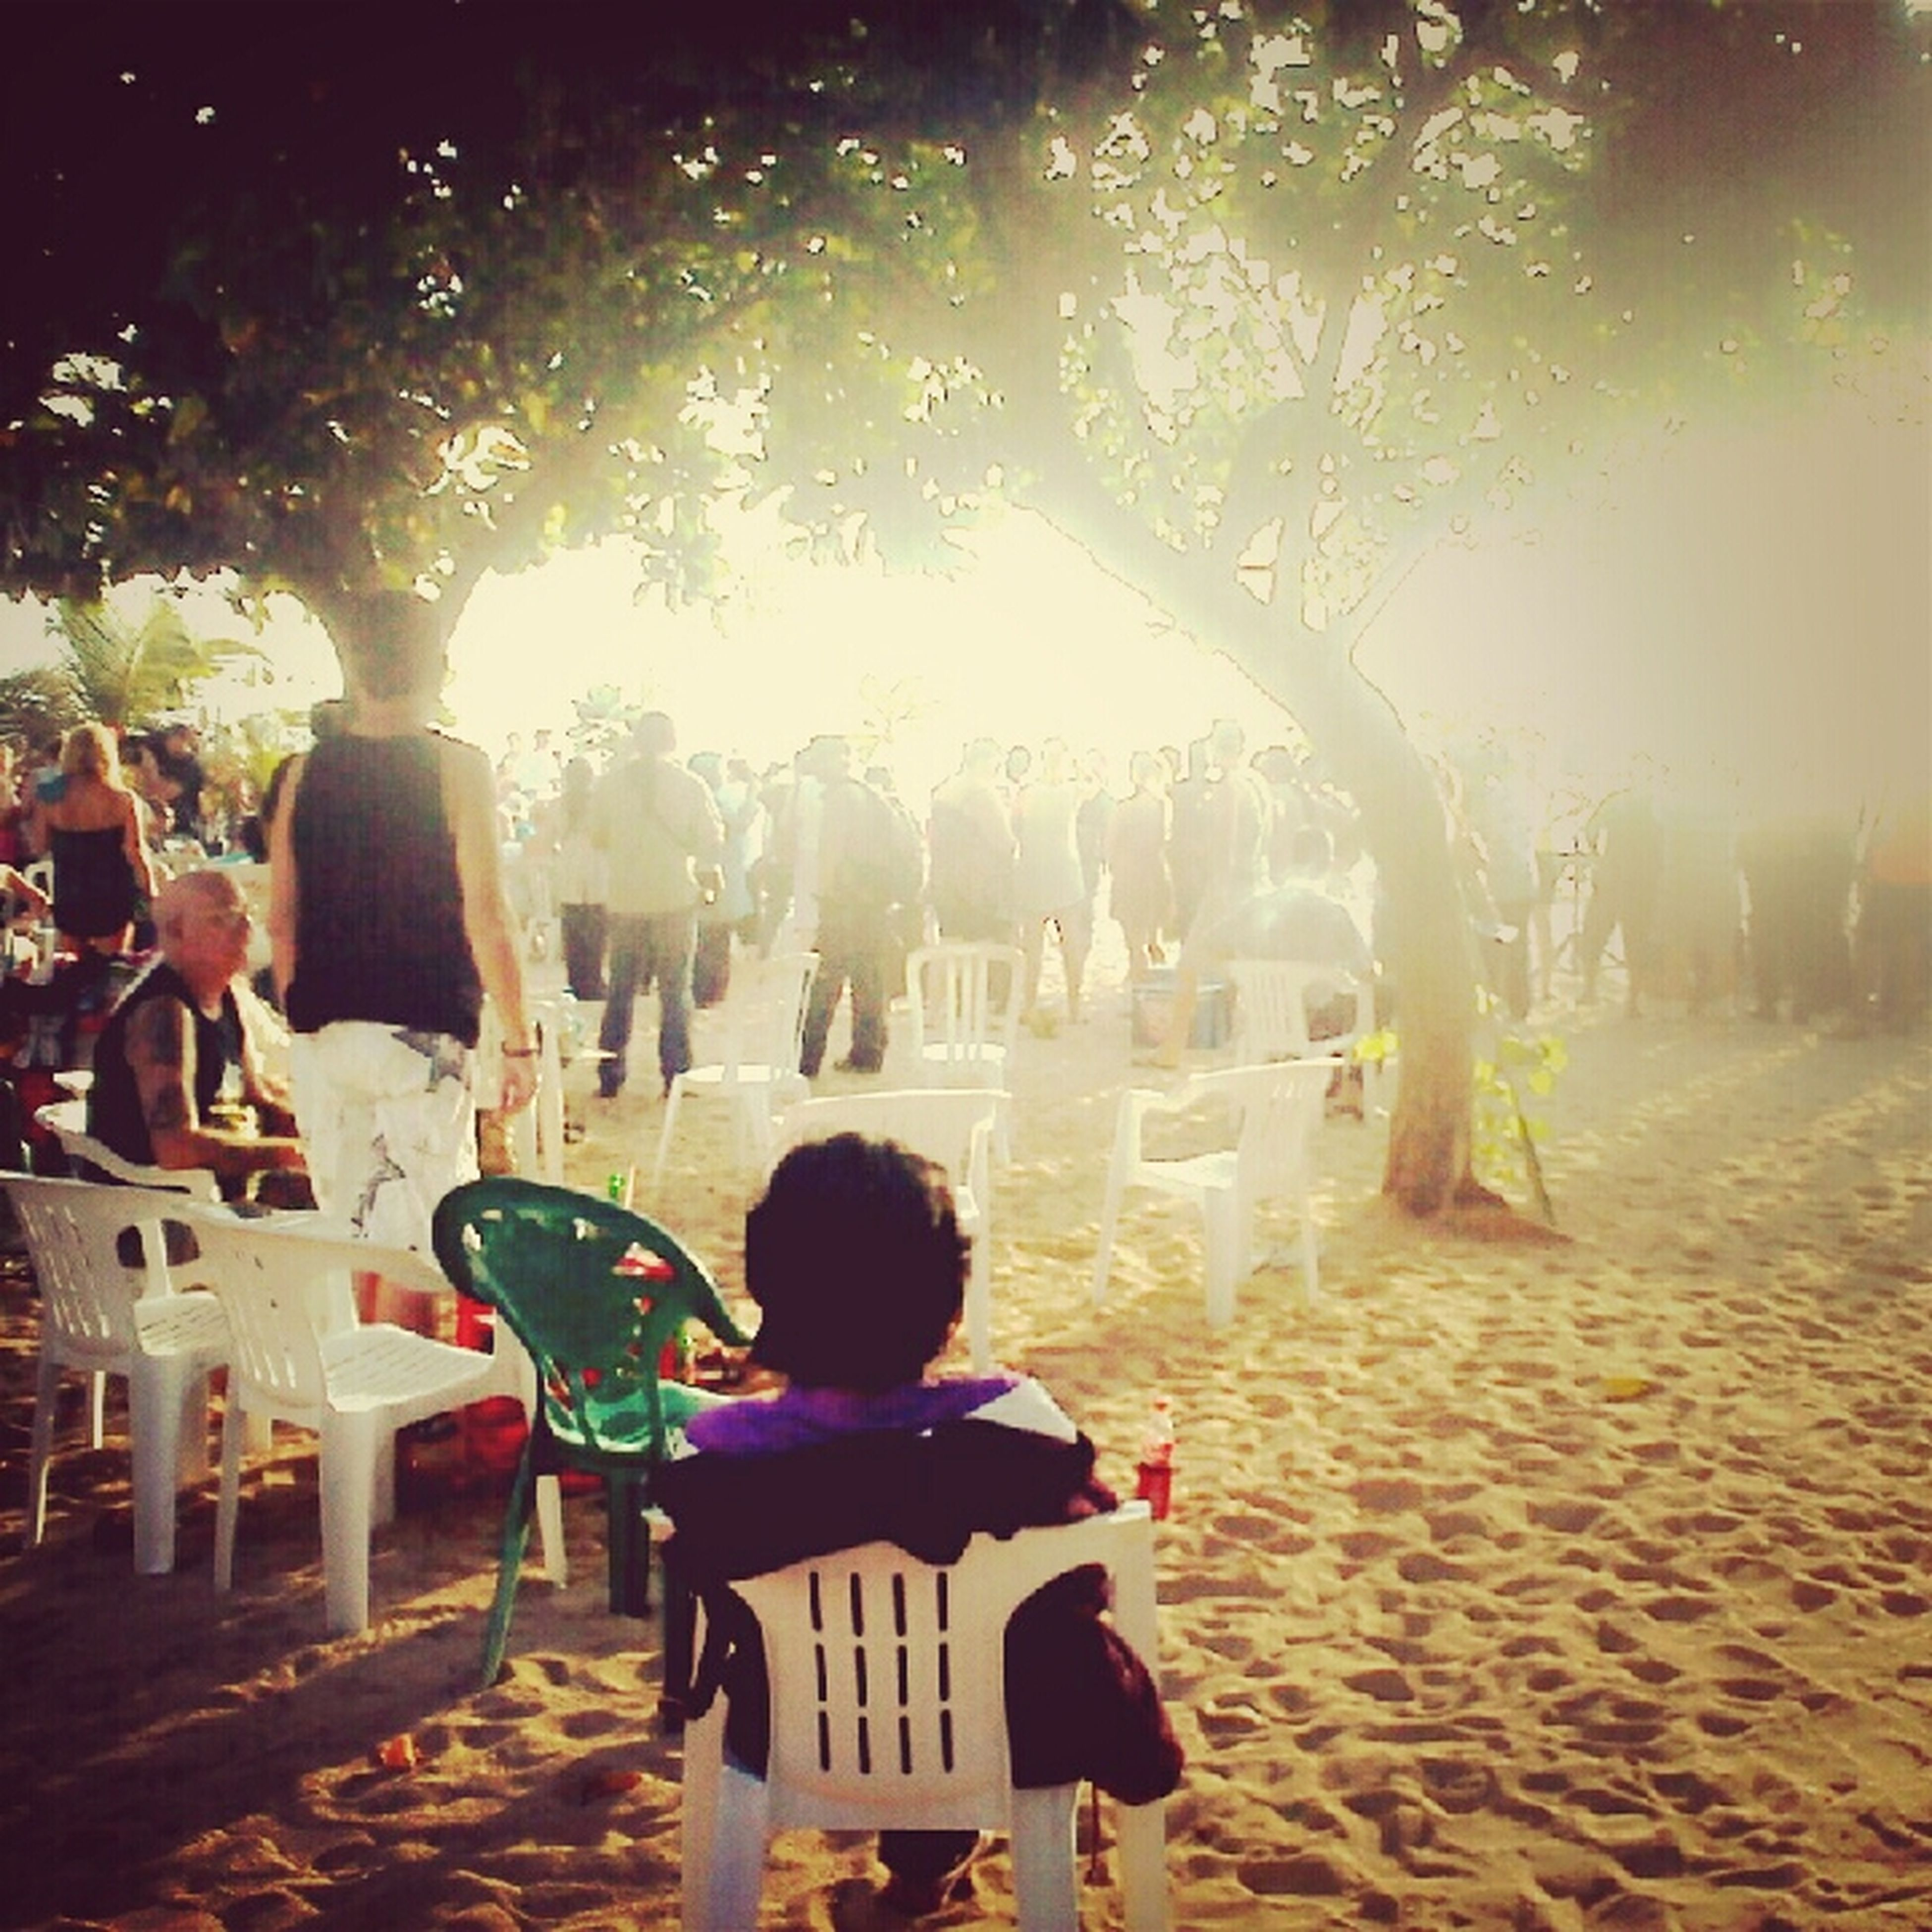 person, leisure activity, men, lifestyles, tree, sitting, sunlight, large group of people, relaxation, rear view, togetherness, chair, medium group of people, park - man made space, vacations, day, outdoors, standing, incidental people